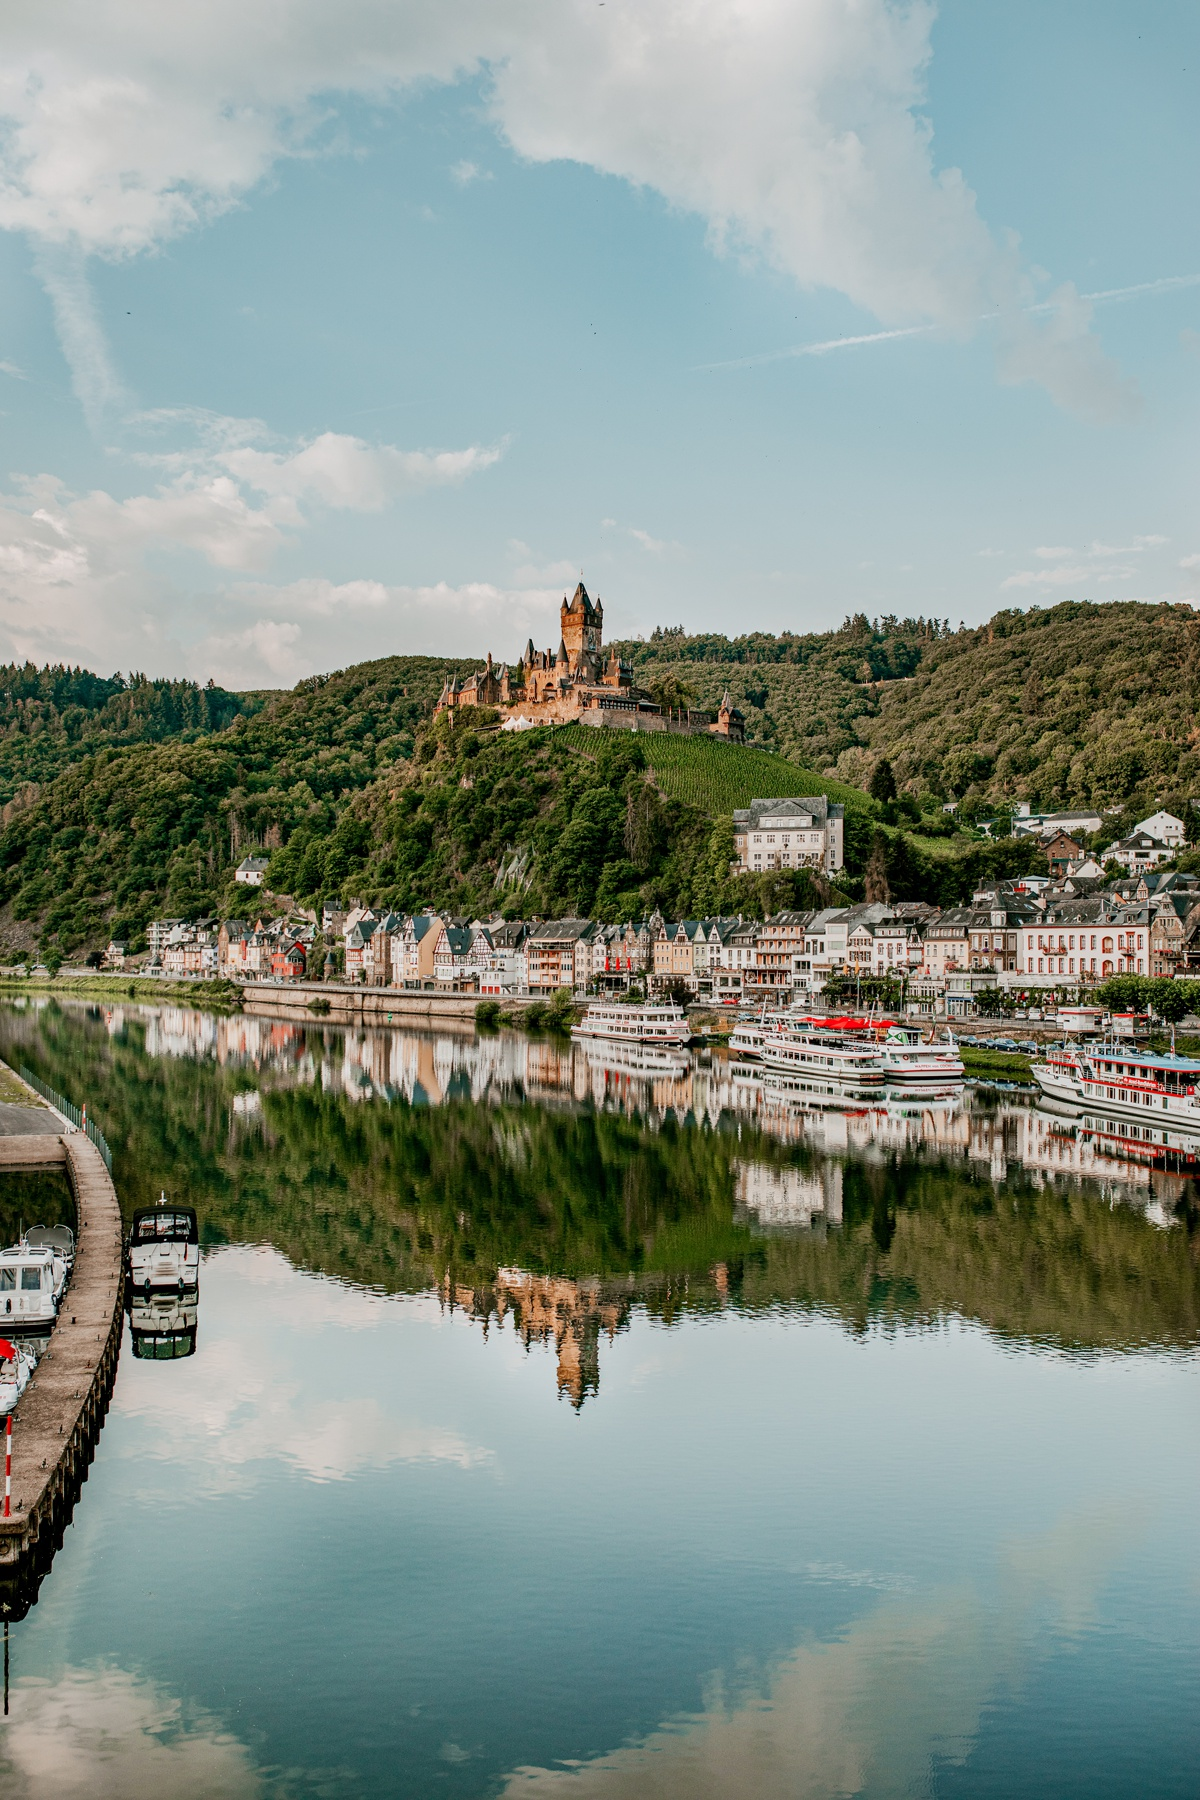 Touring Cochem, Germany with Kids